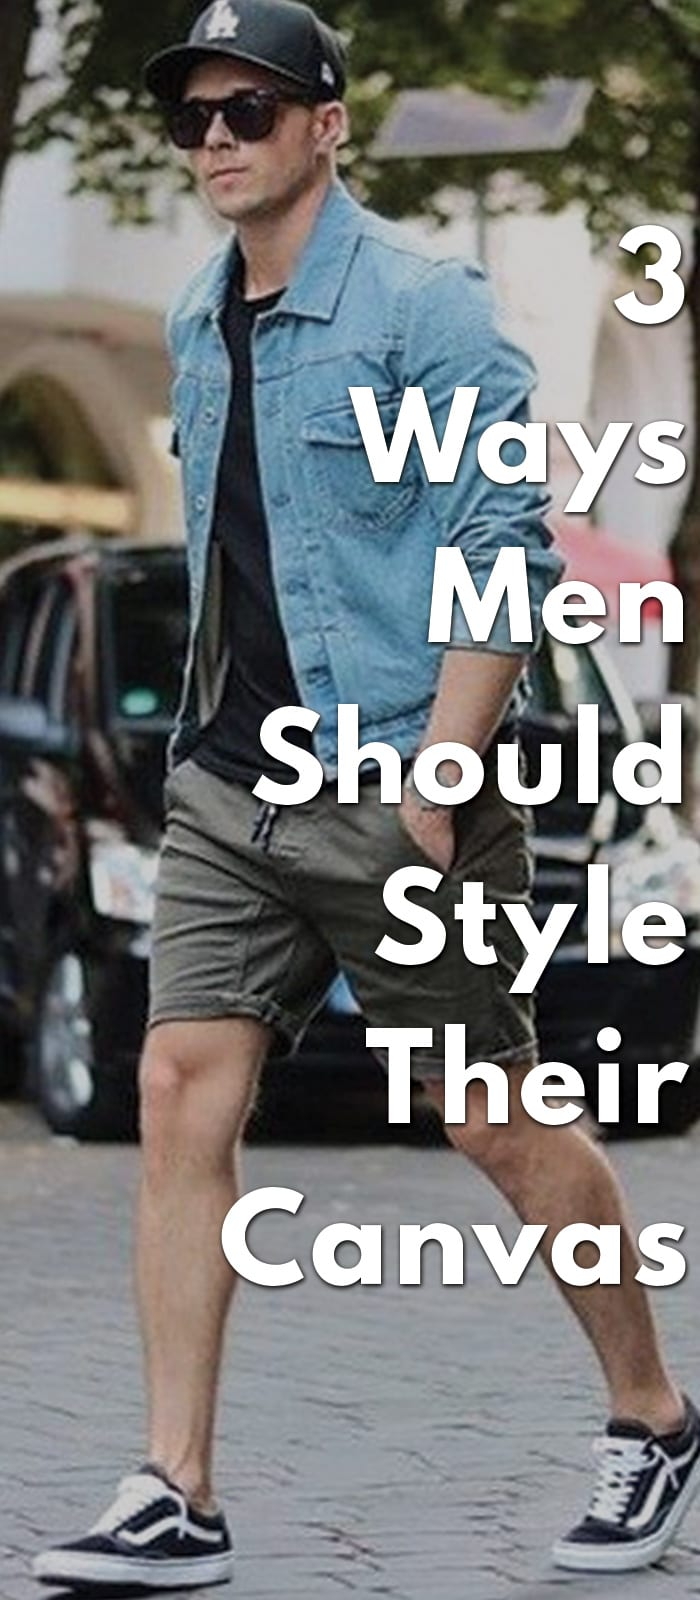 3-Ways-Men-Should-Style-Their-Canvas